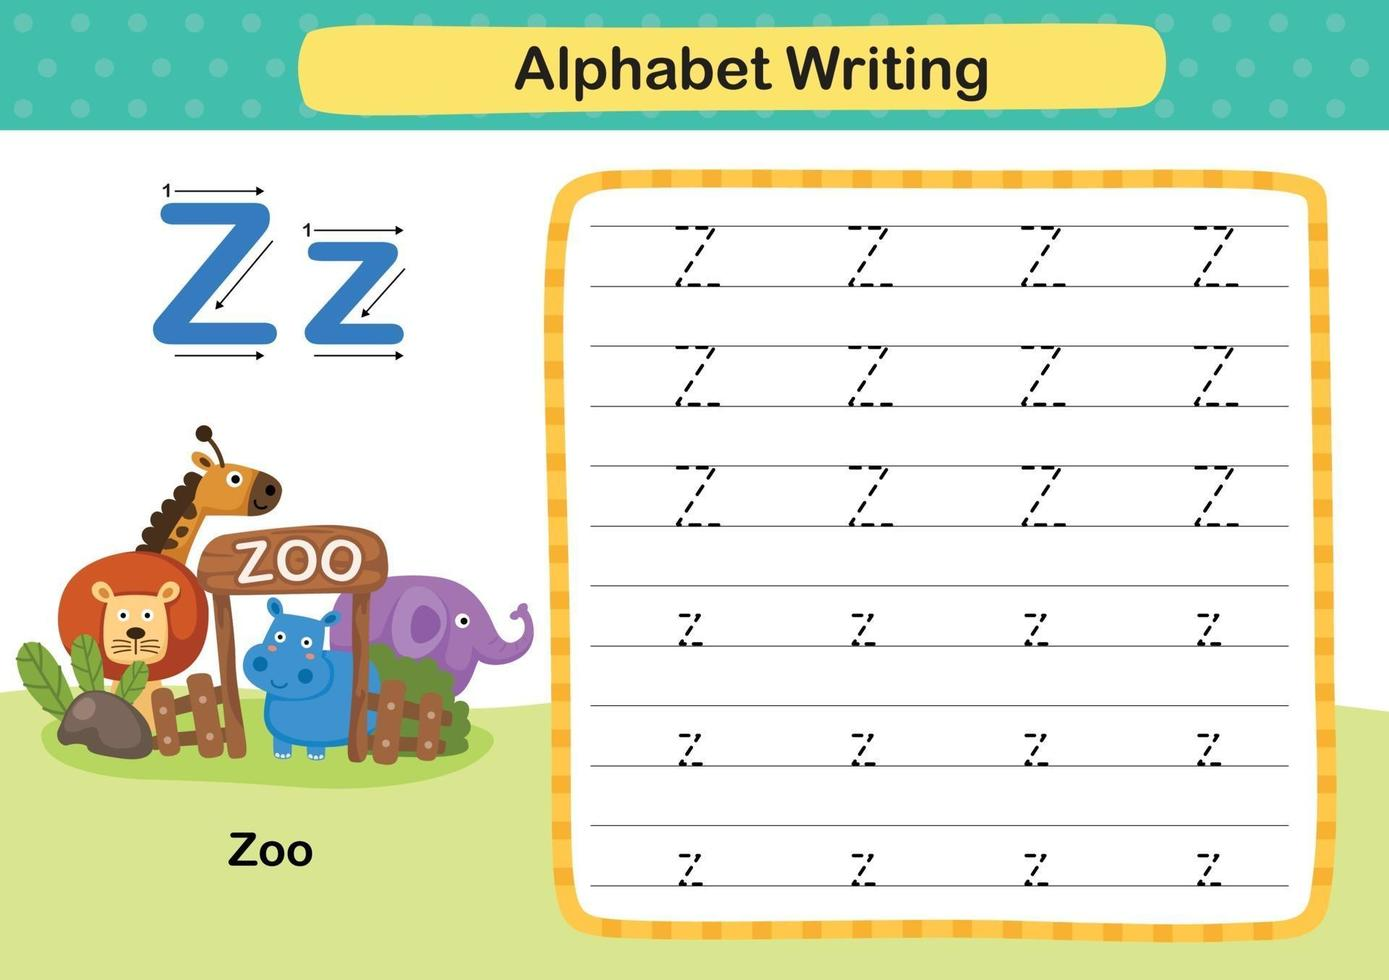 Alphabet Letter Z-Zoo exercise with cartoon vocabulary illustration, vector